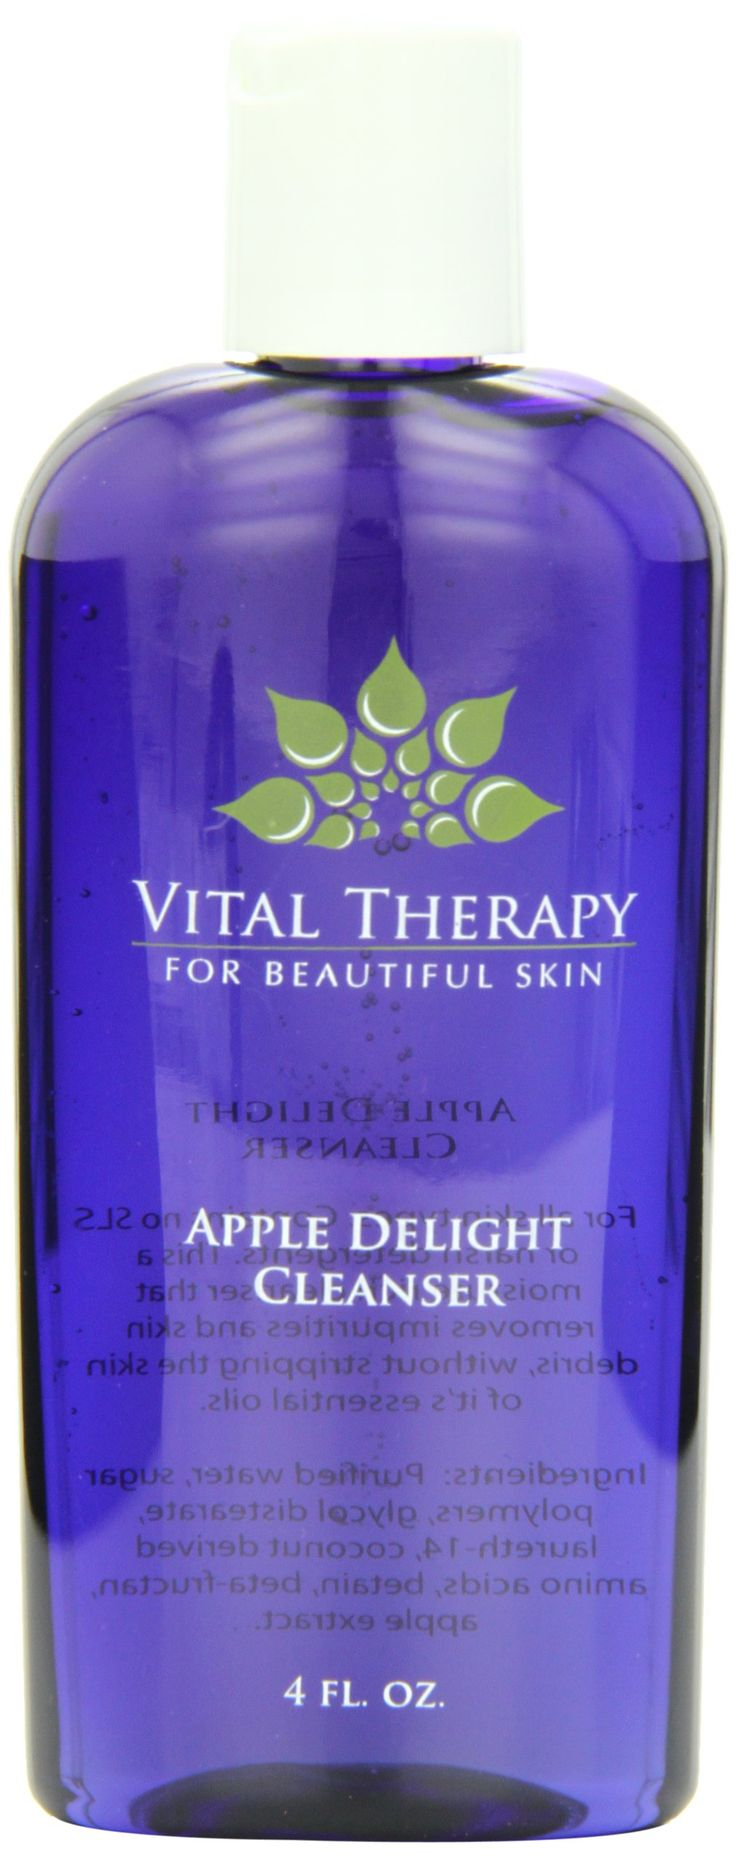 Vital Therapy Cleanser, Apple Delight, 4 Ounce. This will not dry out the skin. Heaven for dry skin!. Developed by pharmacist and doctor of naturopathic medicine. The finest, non-toxic skin nutrients found on the market. Nutrient concentrated, with cutting edge synergistic activity that achieves results rapidly. No toxic preservatives, dyes, filler, fragrances, or chemicals are used in Vital Therapy products.